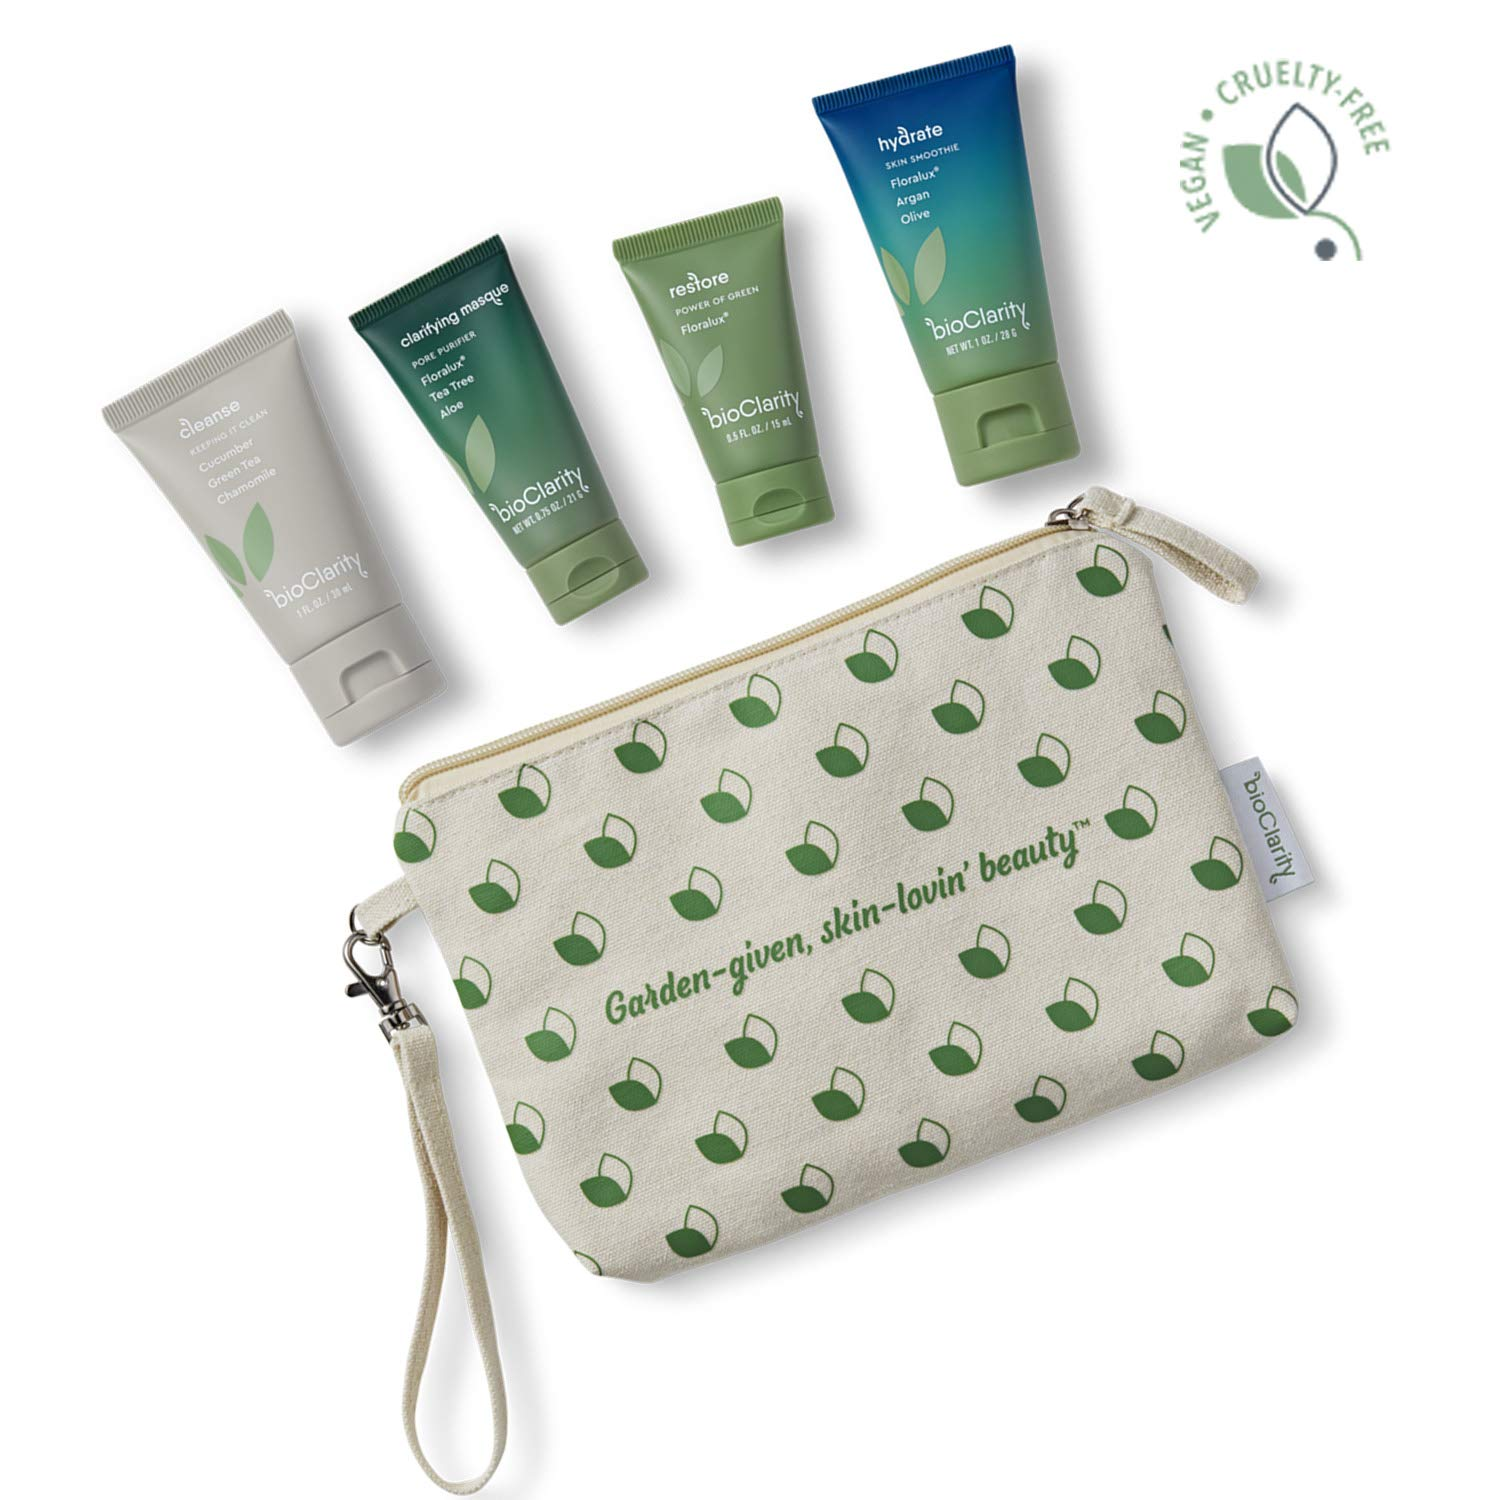 bioClarity Travel-size Skincare Set | 100% Vegan, Skincare Trial Kit | Essentials 3-step Skin Routine + Clarifying Mask with Travel Tote